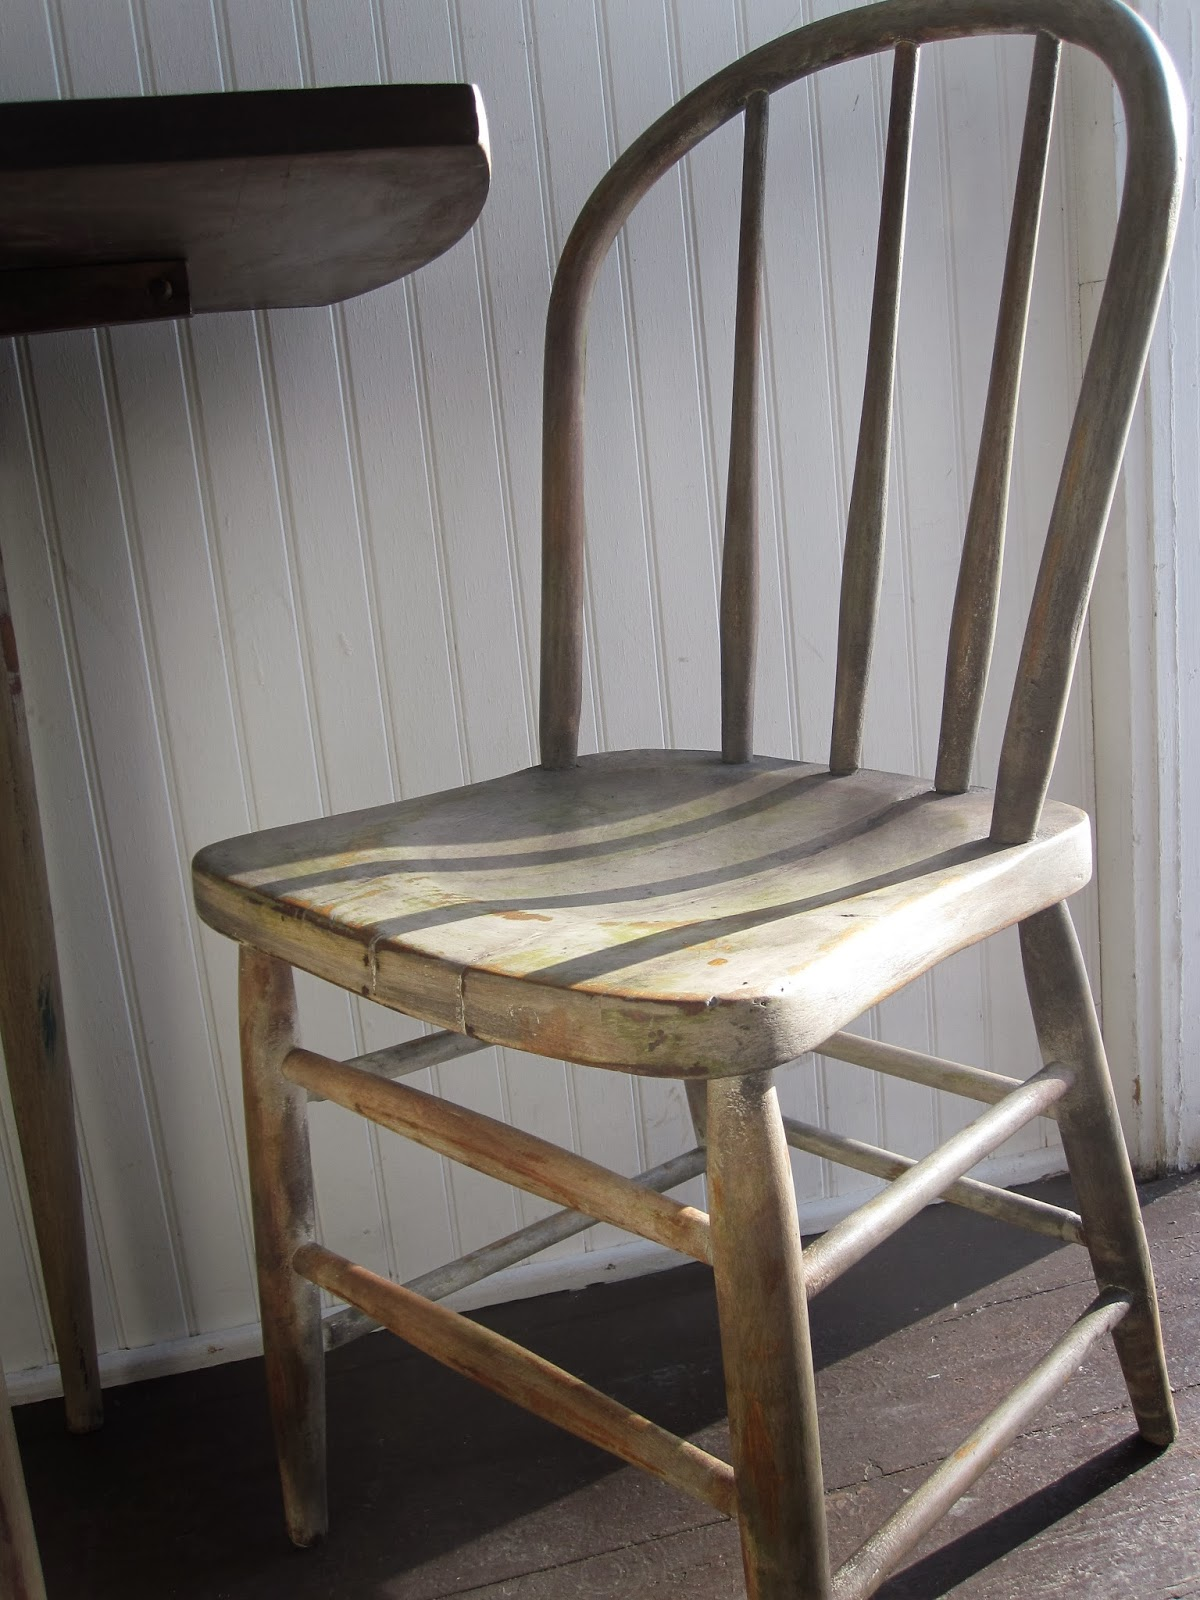 Breakfast Table And Chairs For Two Toddler Chair With Tray Chubby Junk Person Dining Set